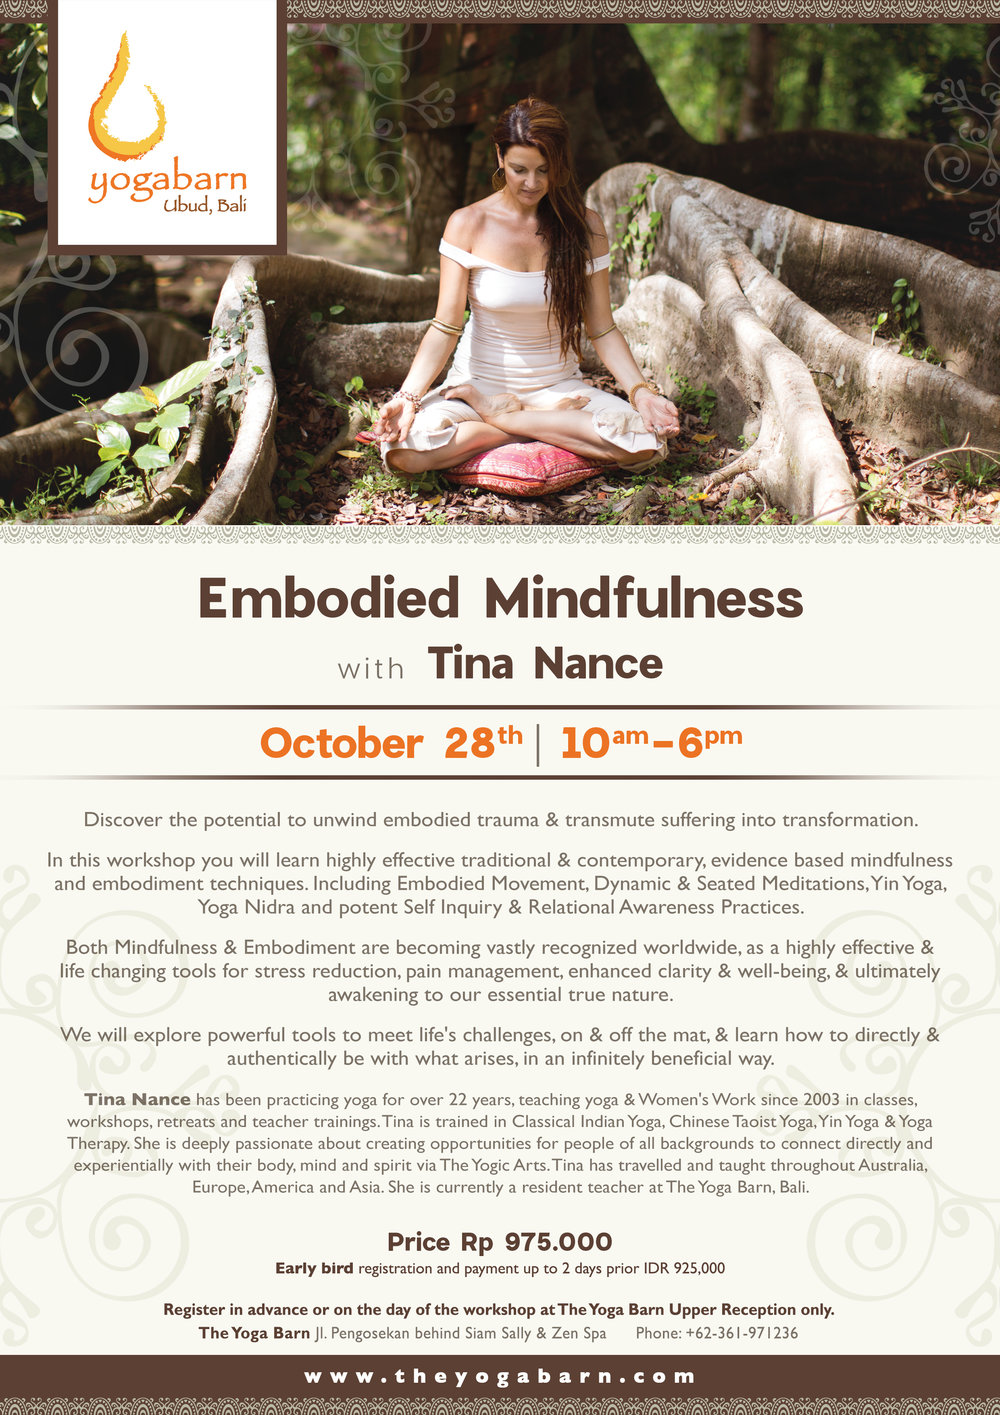 - Embodied MindfulnessOctober 28, 2018 10:00am-6:00pmRp 975,000. *Early Bird registration and payment 2 days prior Rp 925,000Discover the potential to unwind embodied trauma and transmute suffering into transformation.In this workshop you will learn highly effective tradtional & contemporary, evidence based mindfulness and embodiment techniques, including Embodied Movement, Dynamic & Seated Meditations, Yin Yoga, Yoga Nidra and potent self inquiry & relational awareness practices.Both Mindfulness and Embodiment are becoming vastly recognized worldwide, as a highly effective & life changing tools for stress reduction, pain management, enhanced clarity and well-being, ultimately awakening to our essential true nature.We will explore powerful tools to meet life's challenges, on & off the mat, learn how to directly and authentically be with what arises, in an infinitely beneficial way.